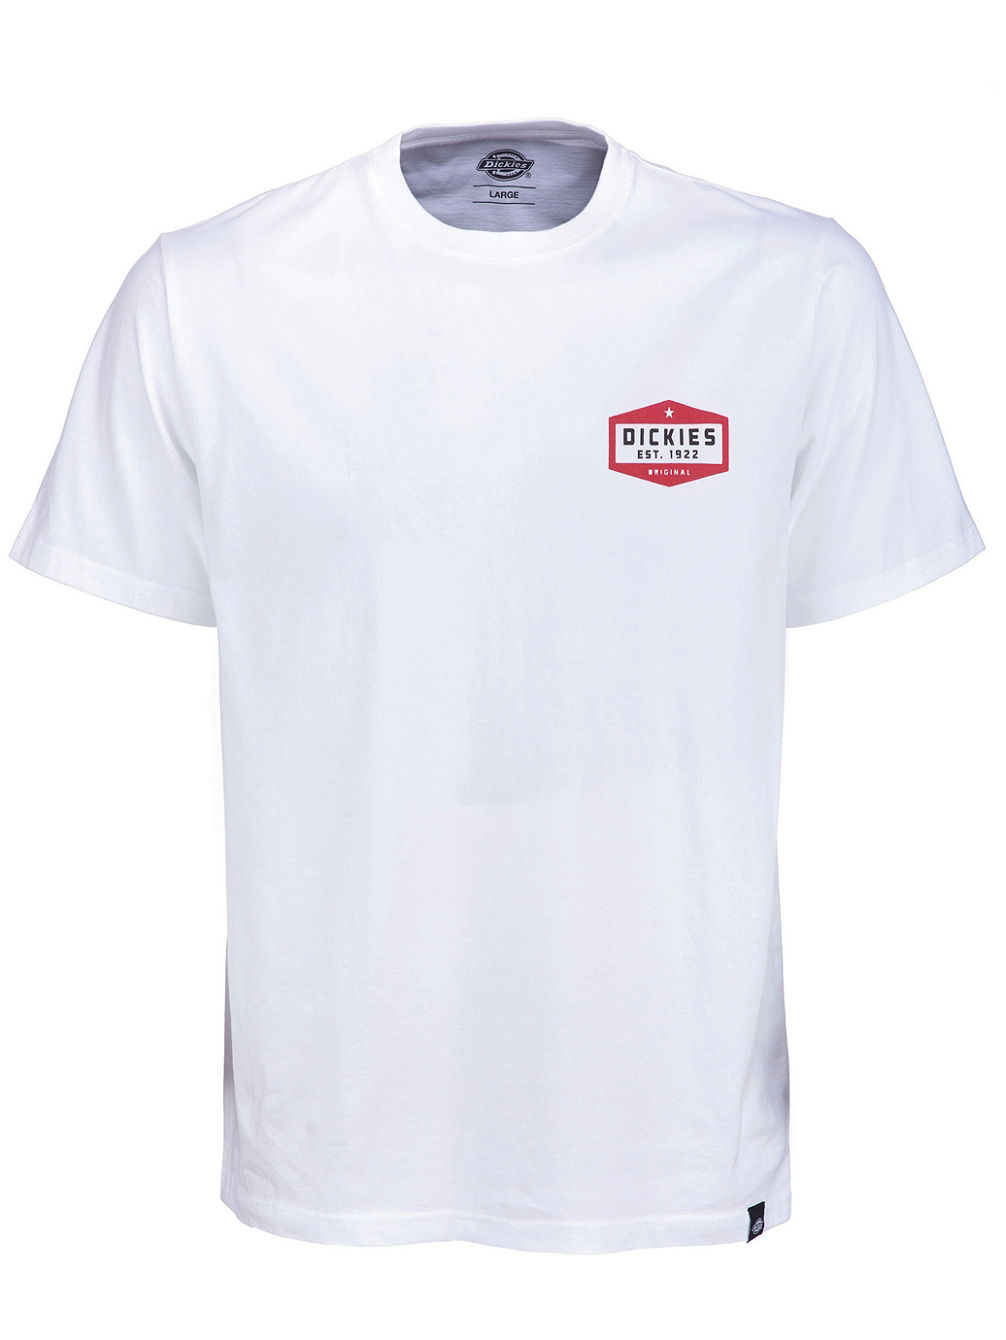 Plainfield T-Shirt